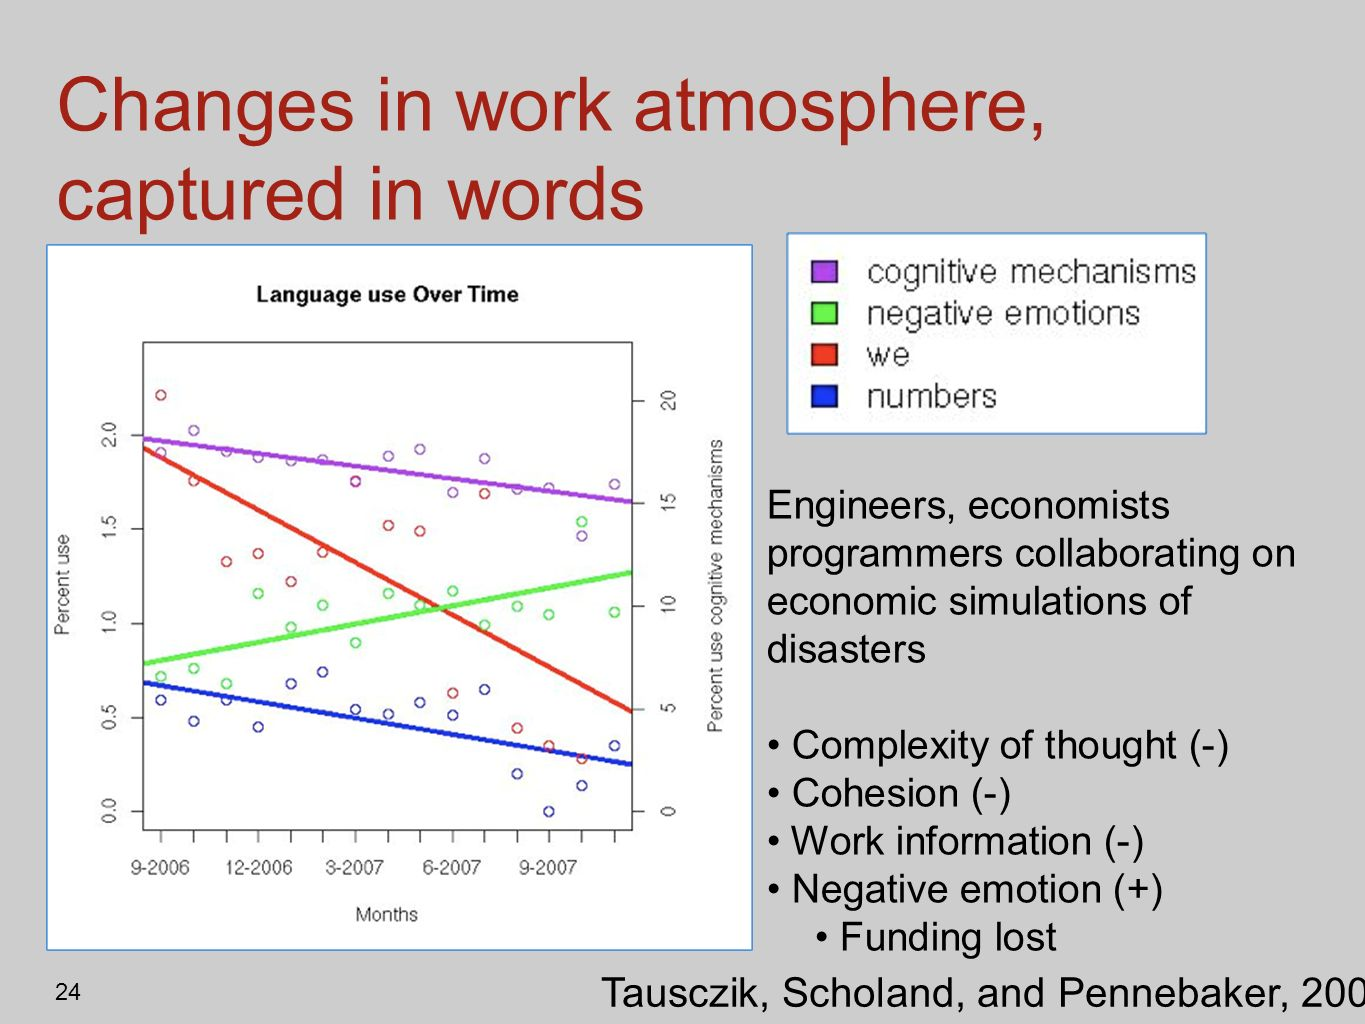 Changes in work atmosphere, captured in words